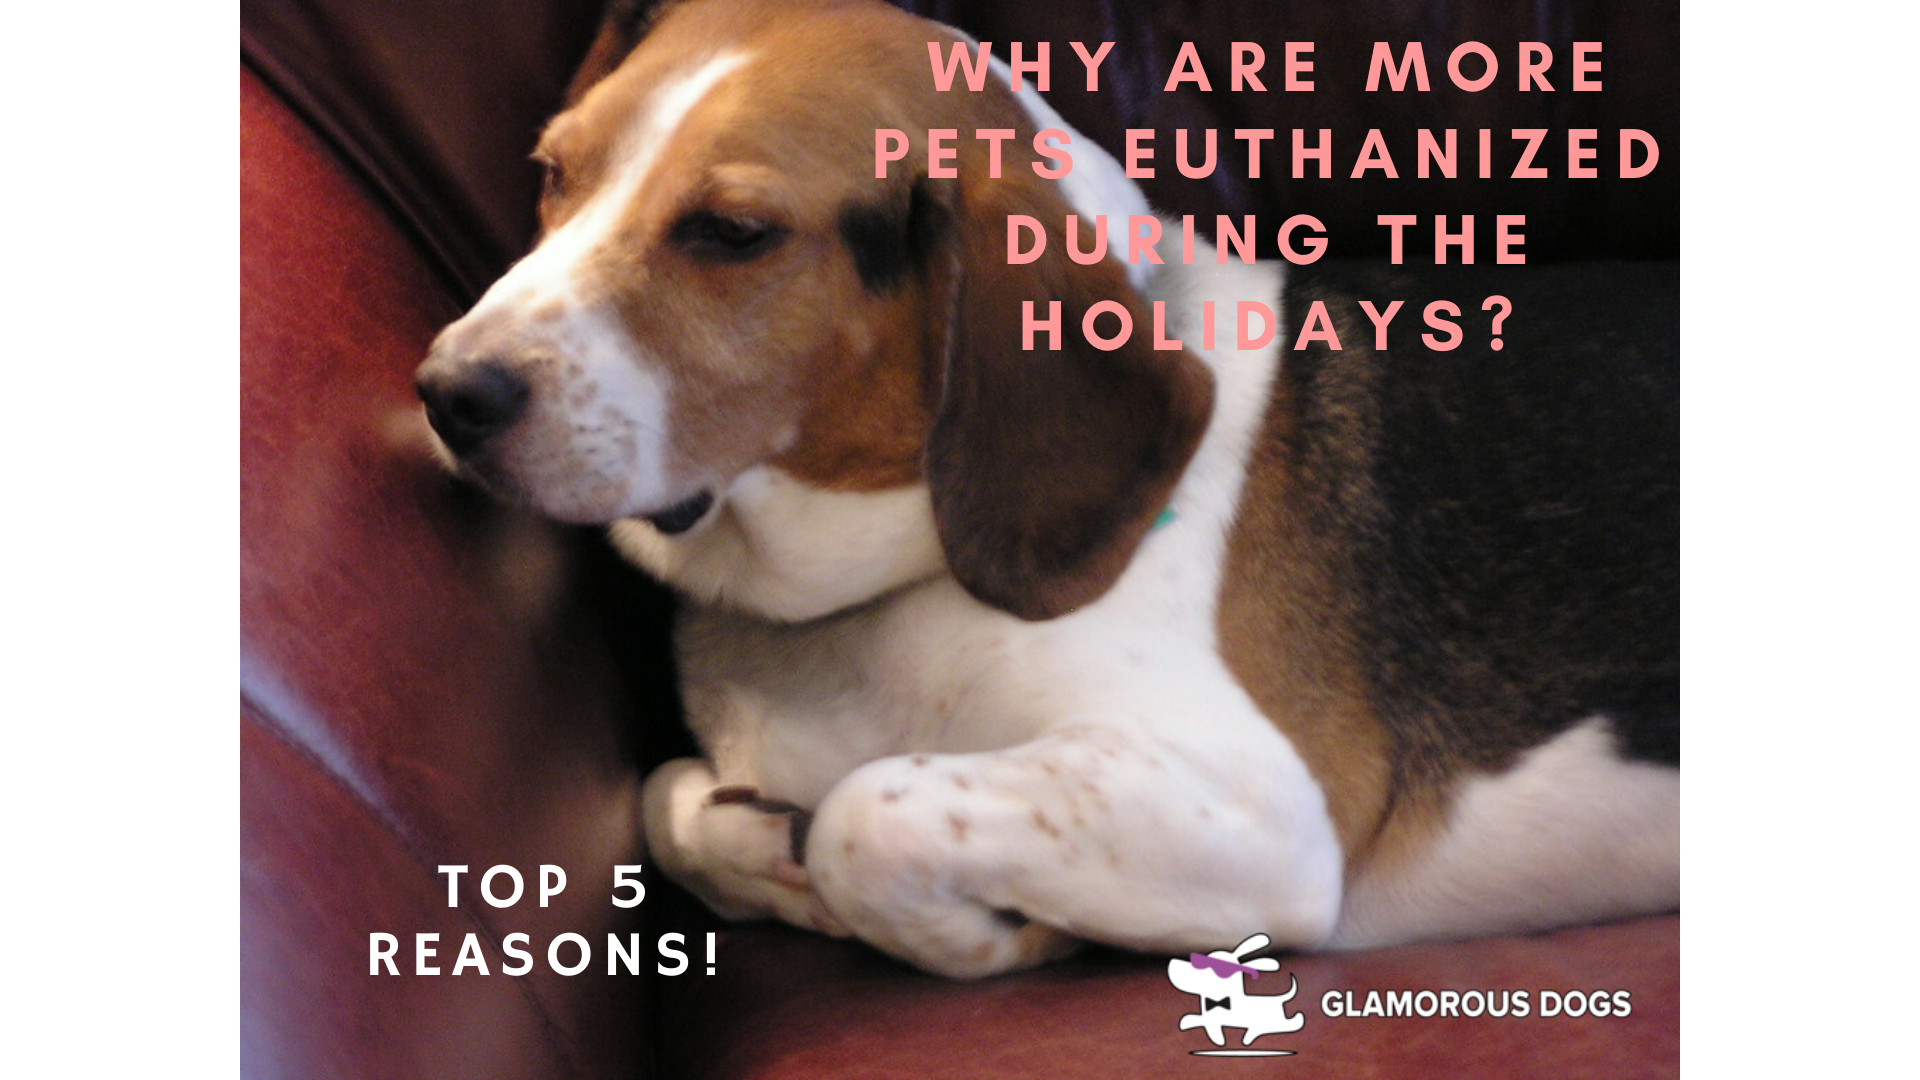 Why Are More Pets Euthanized During the Holidays: Top 5 Reasons